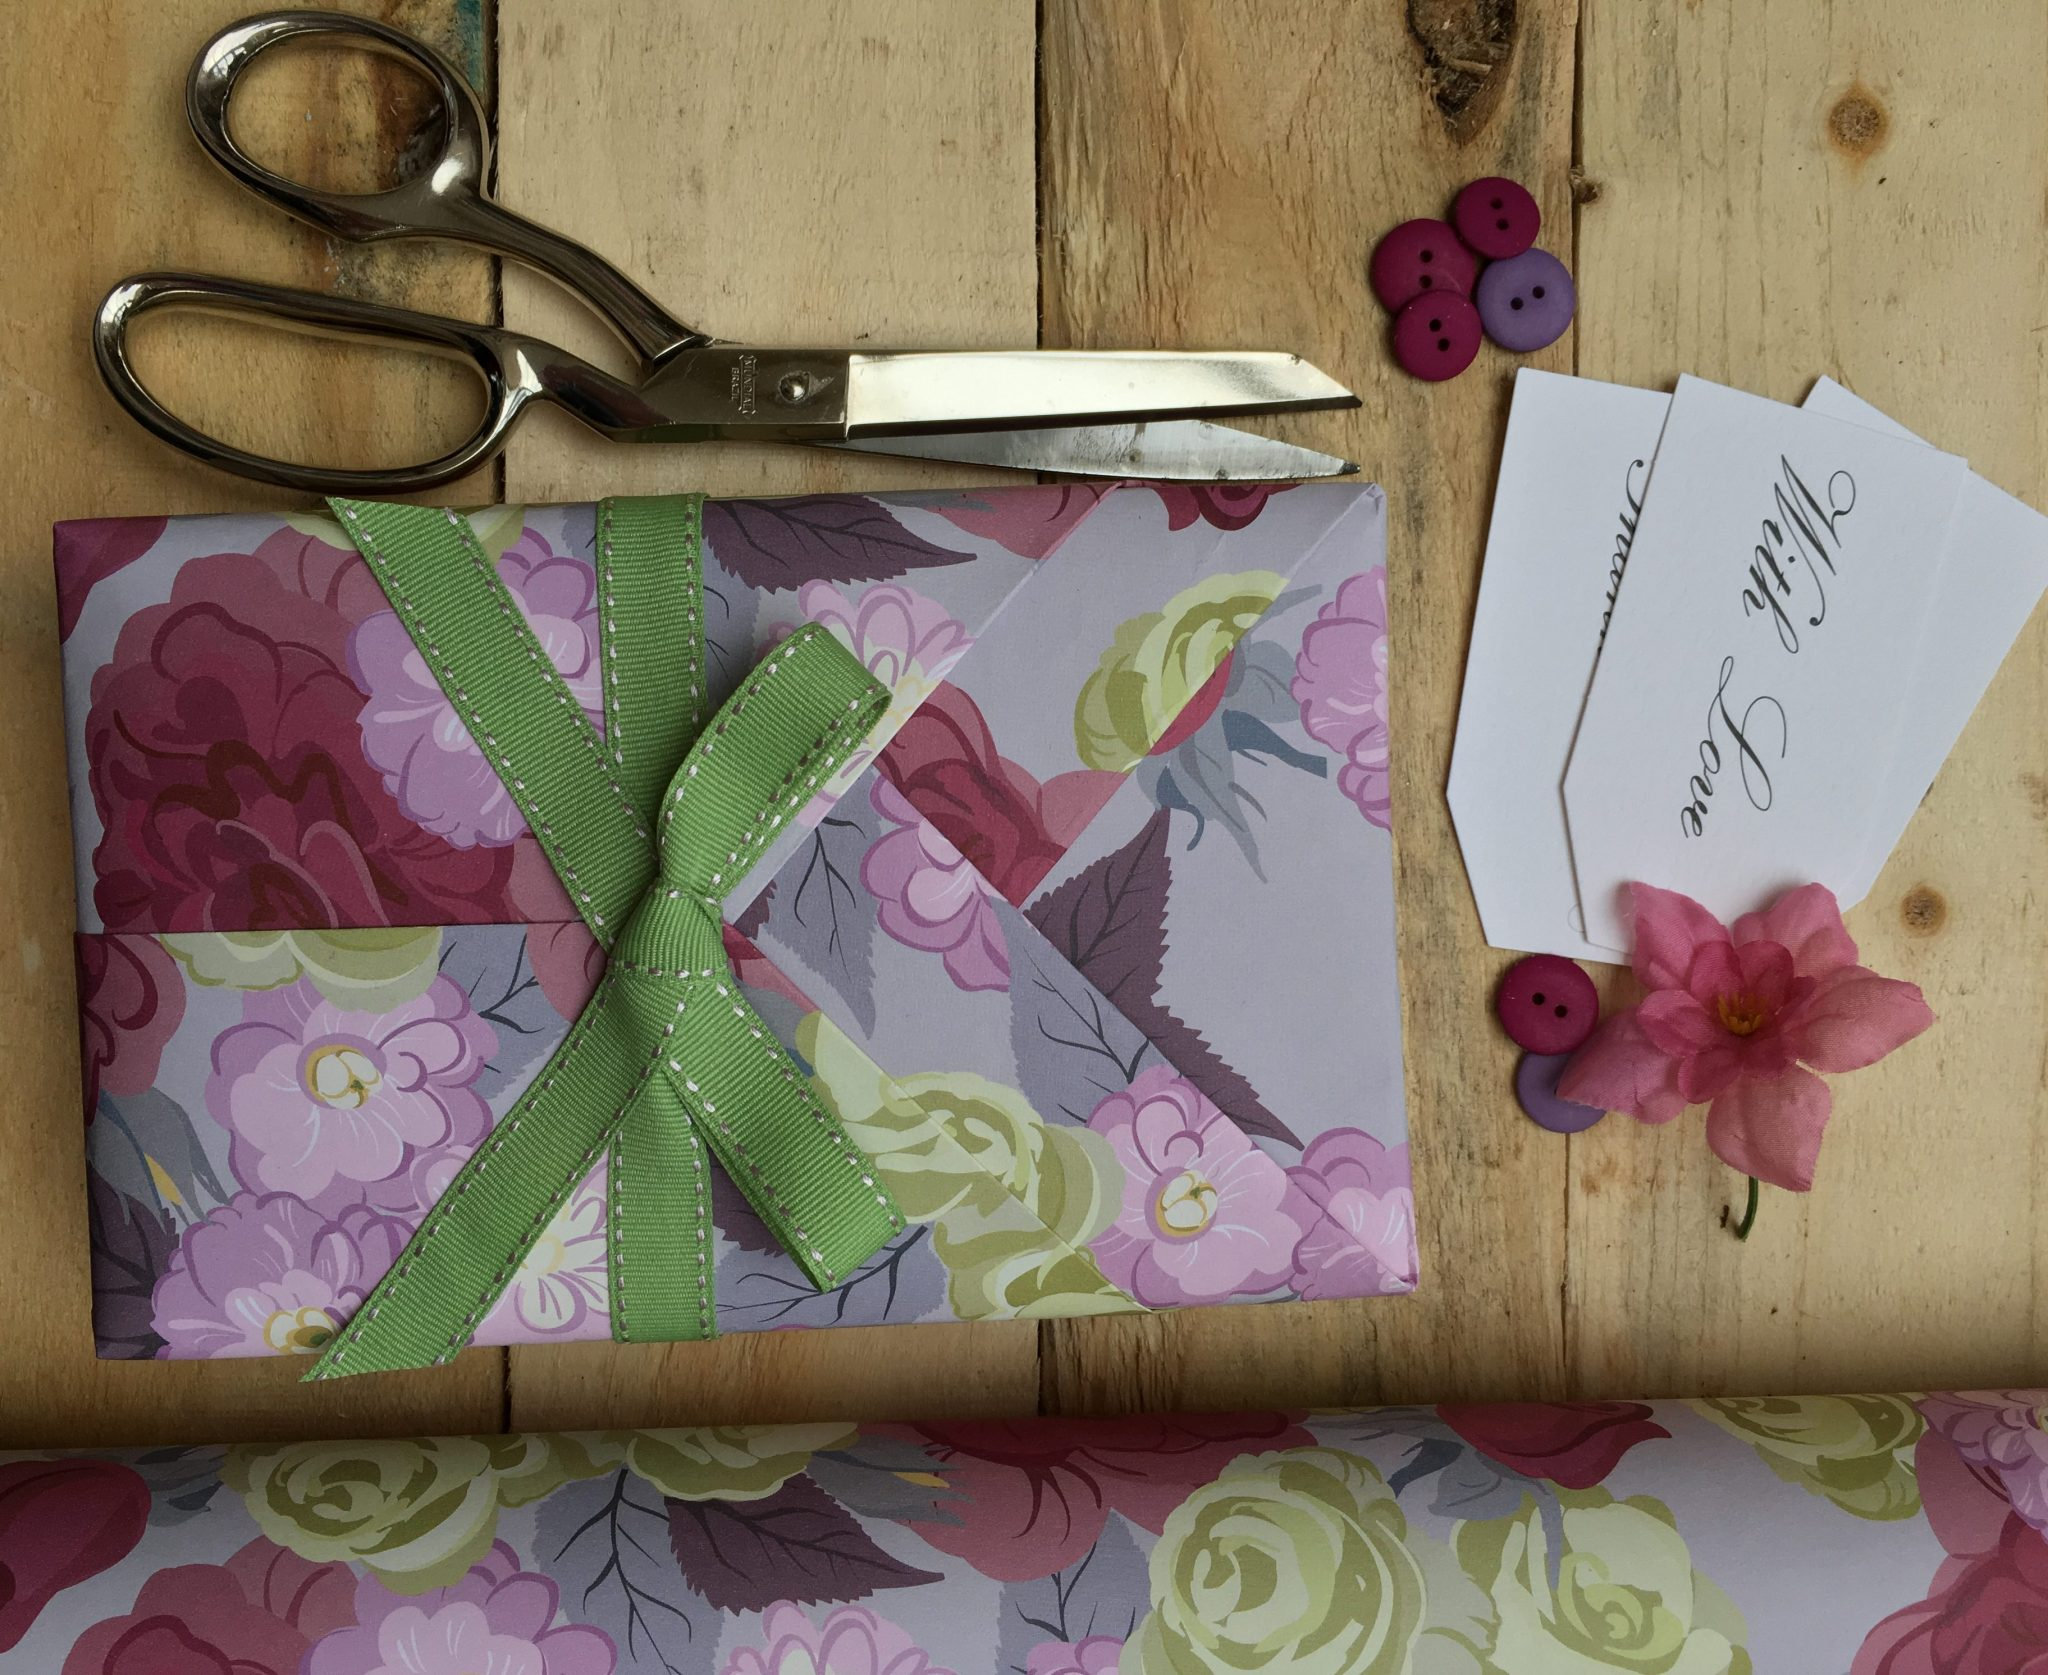 kimono style wrapped parcel, roll of giftwrap, scissors and tags